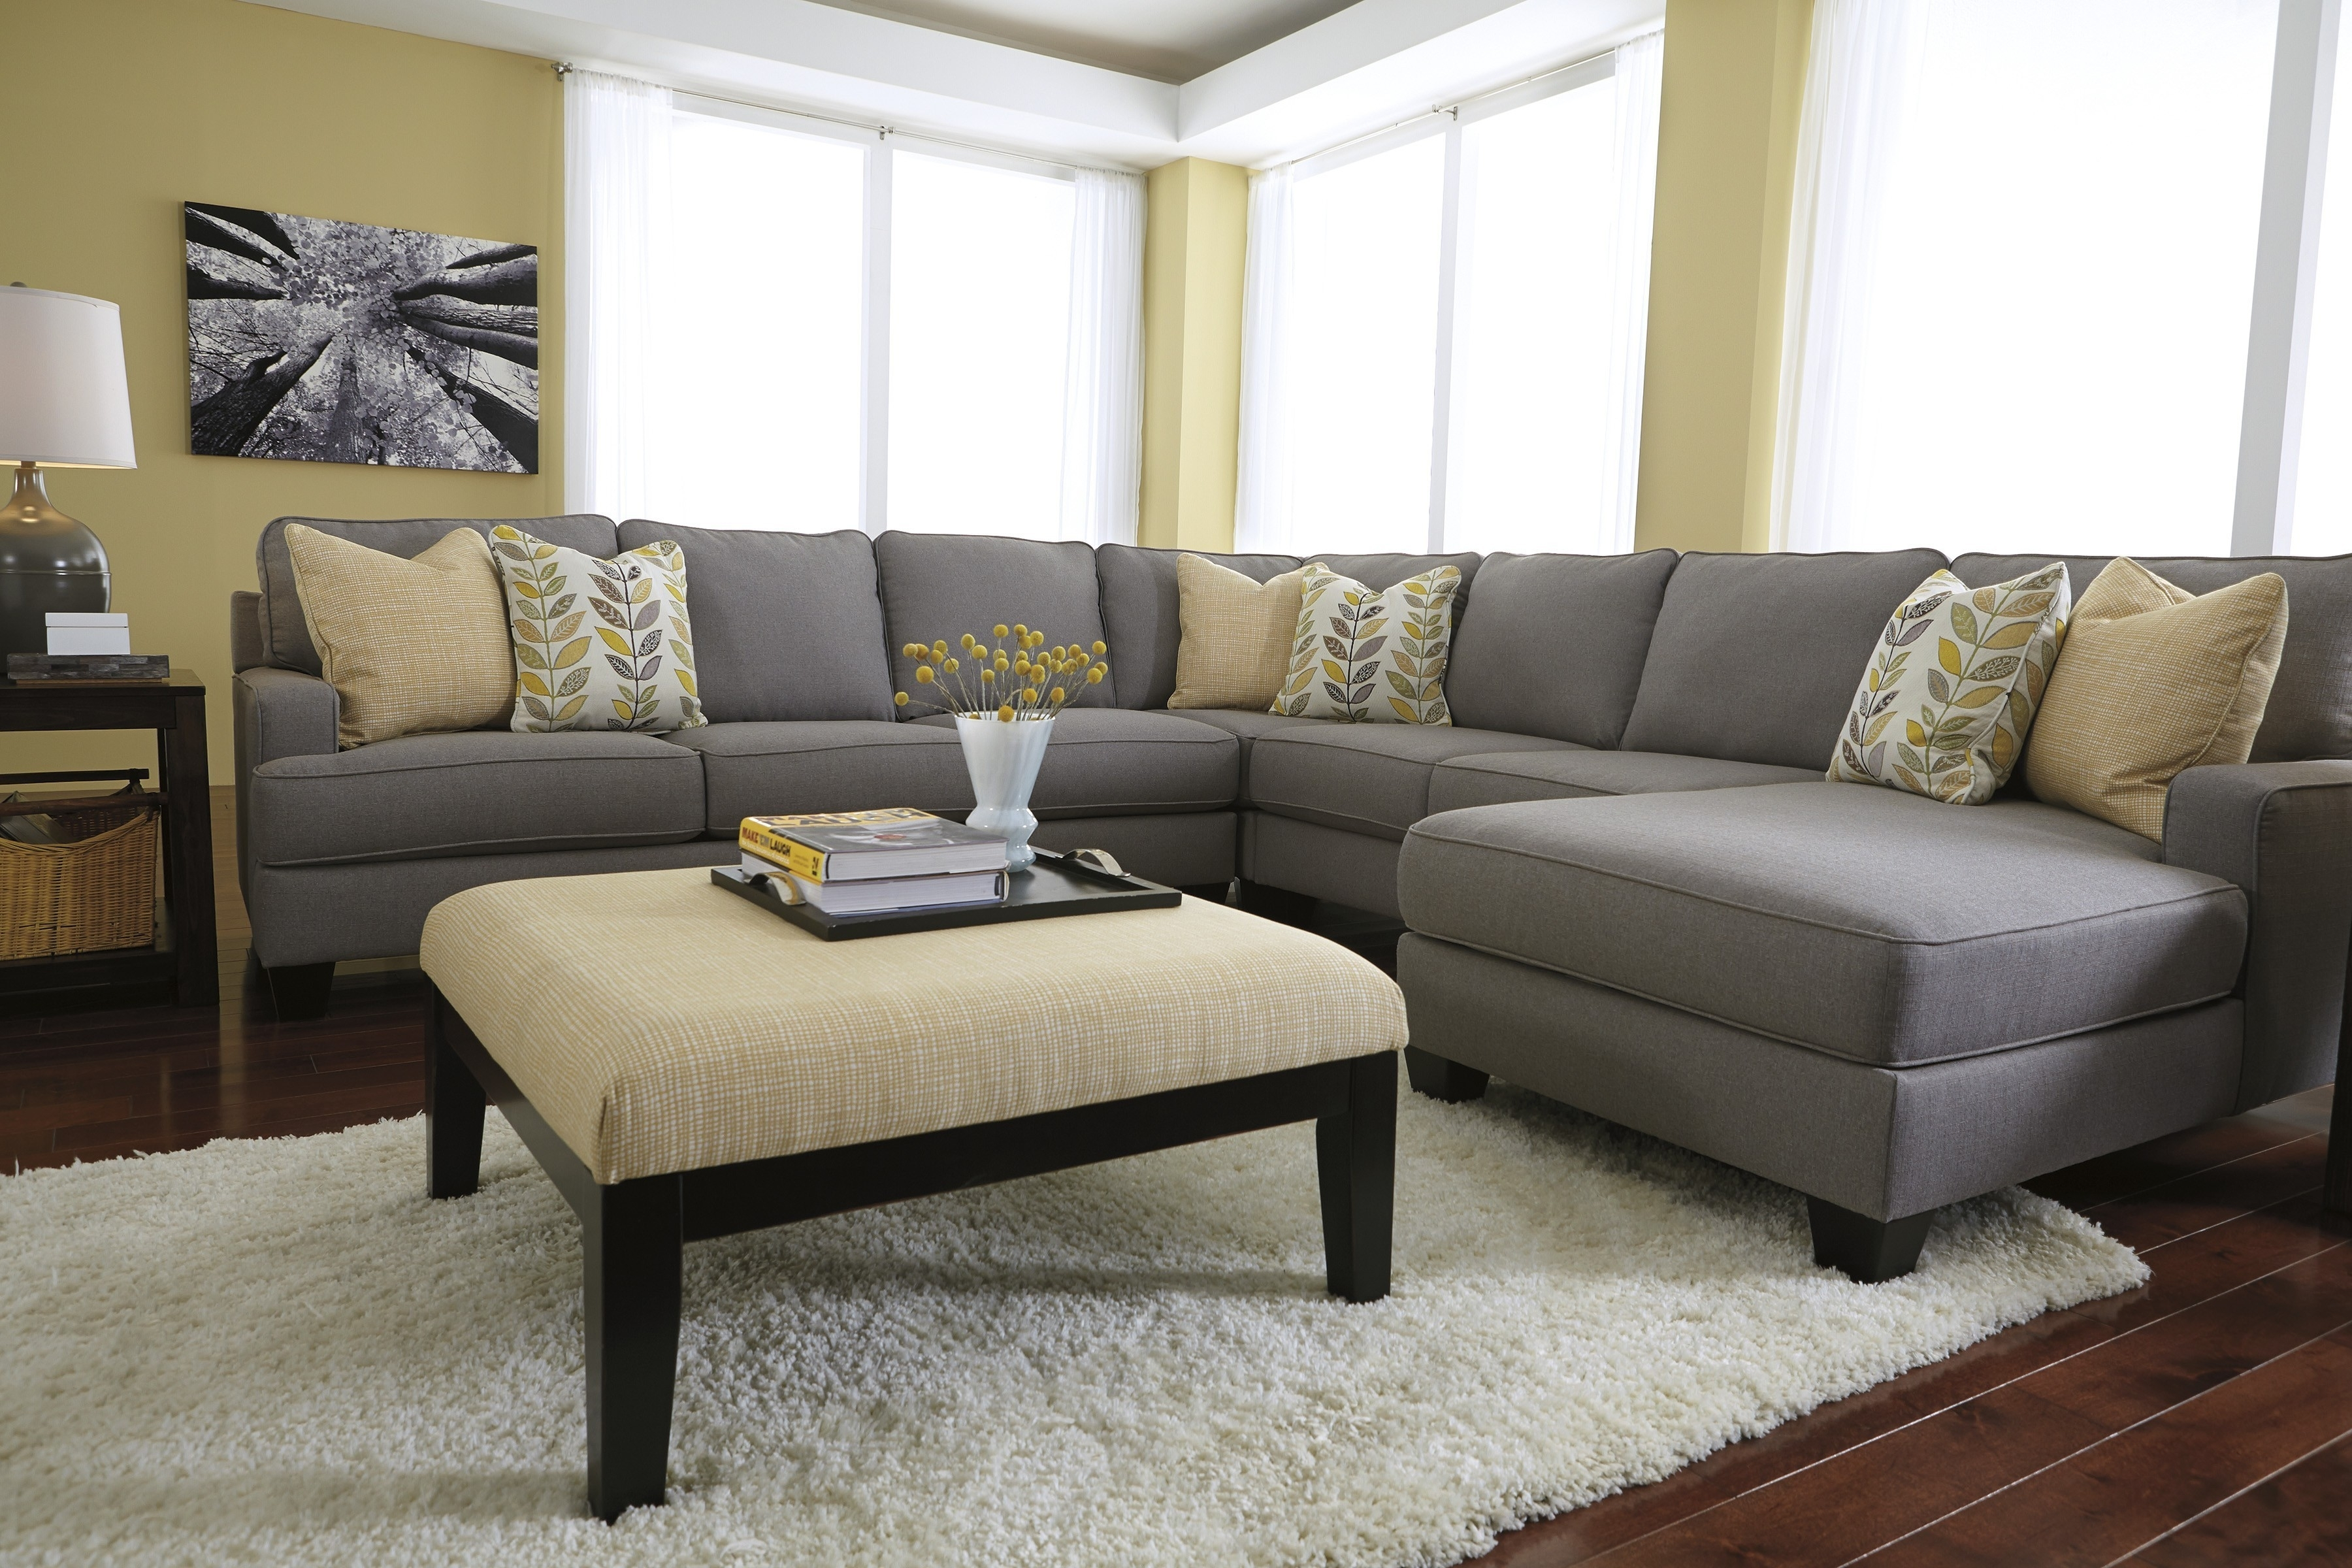 Why You Should Choose A Small Sectional Sofas | Ifresh Design Inside Small Sectional Sofas With Chaise And Ottoman (View 15 of 15)